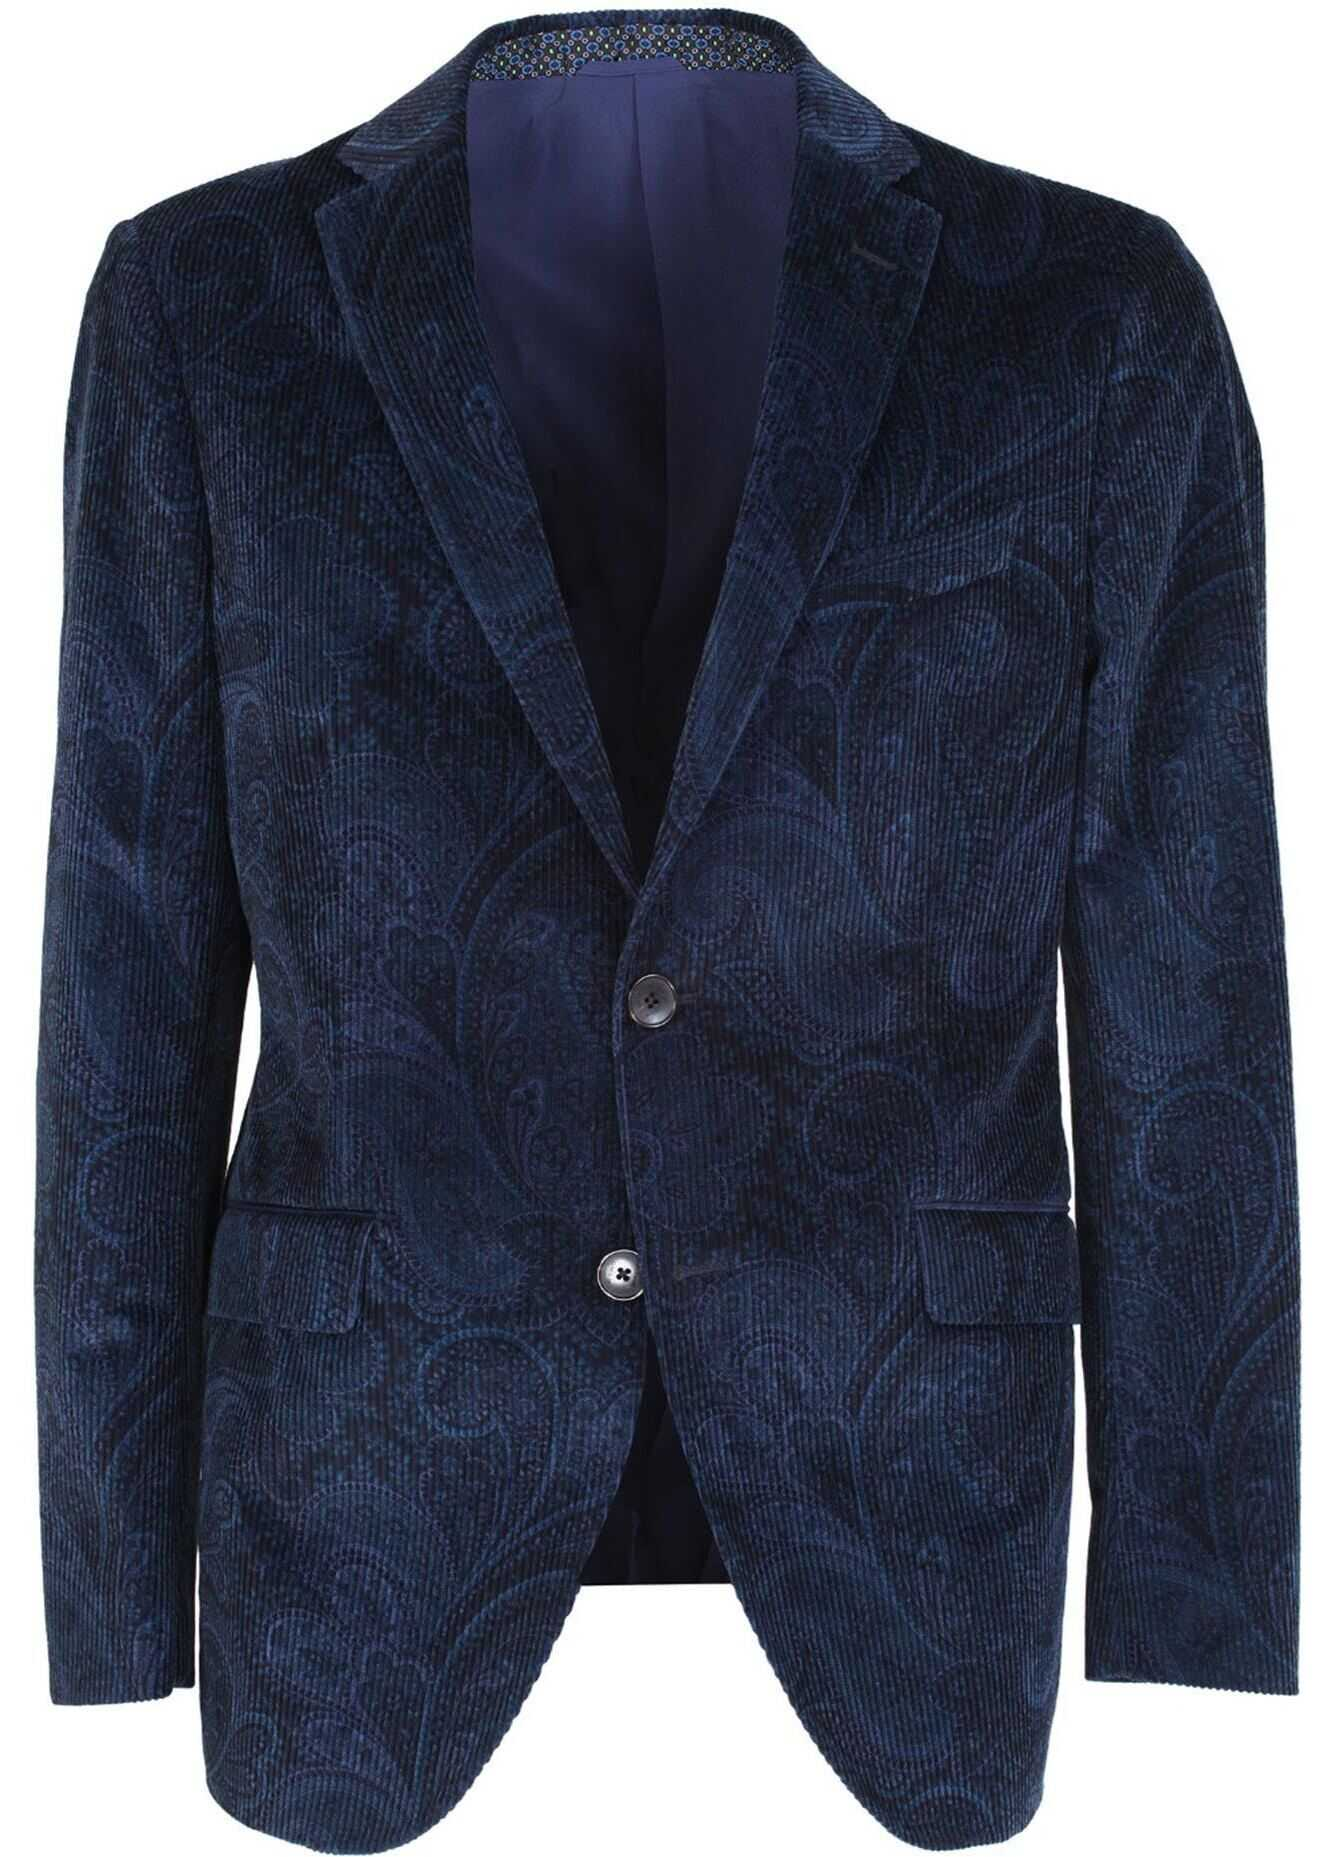 ETRO Tailored Jacket With Paisley Motifs In Blue Blue imagine